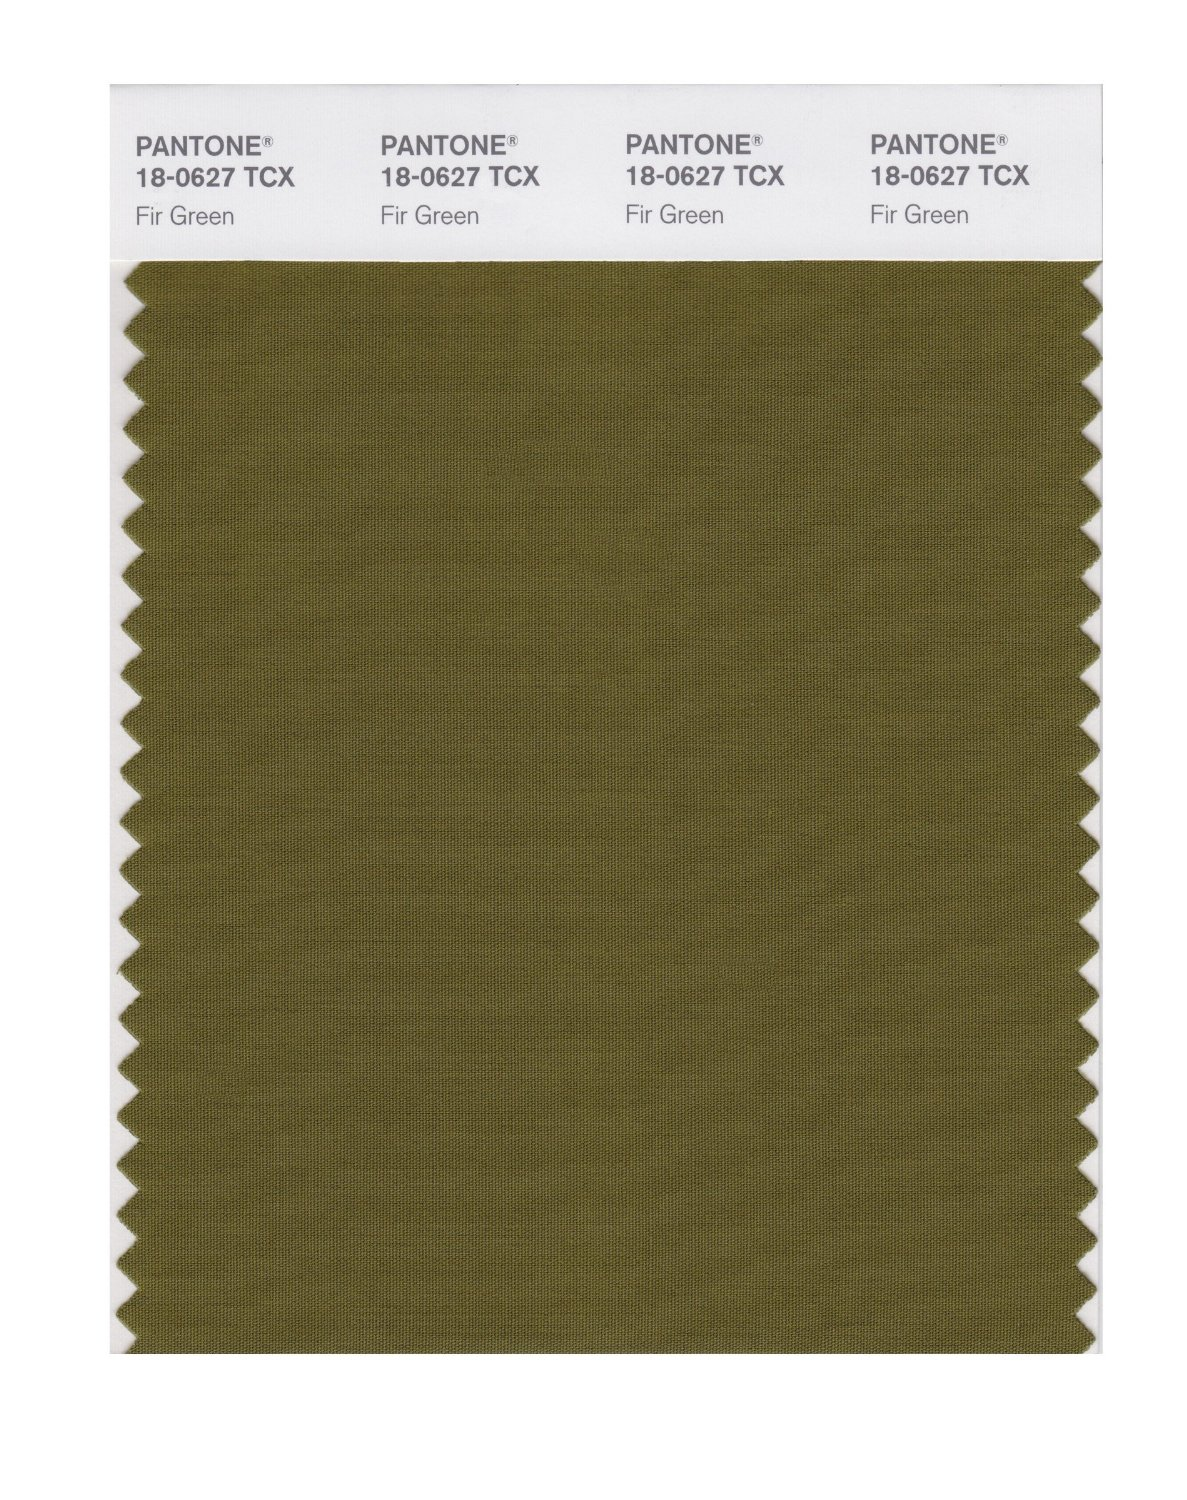 Pantone Smart Swatch 18-0627 Fir Green